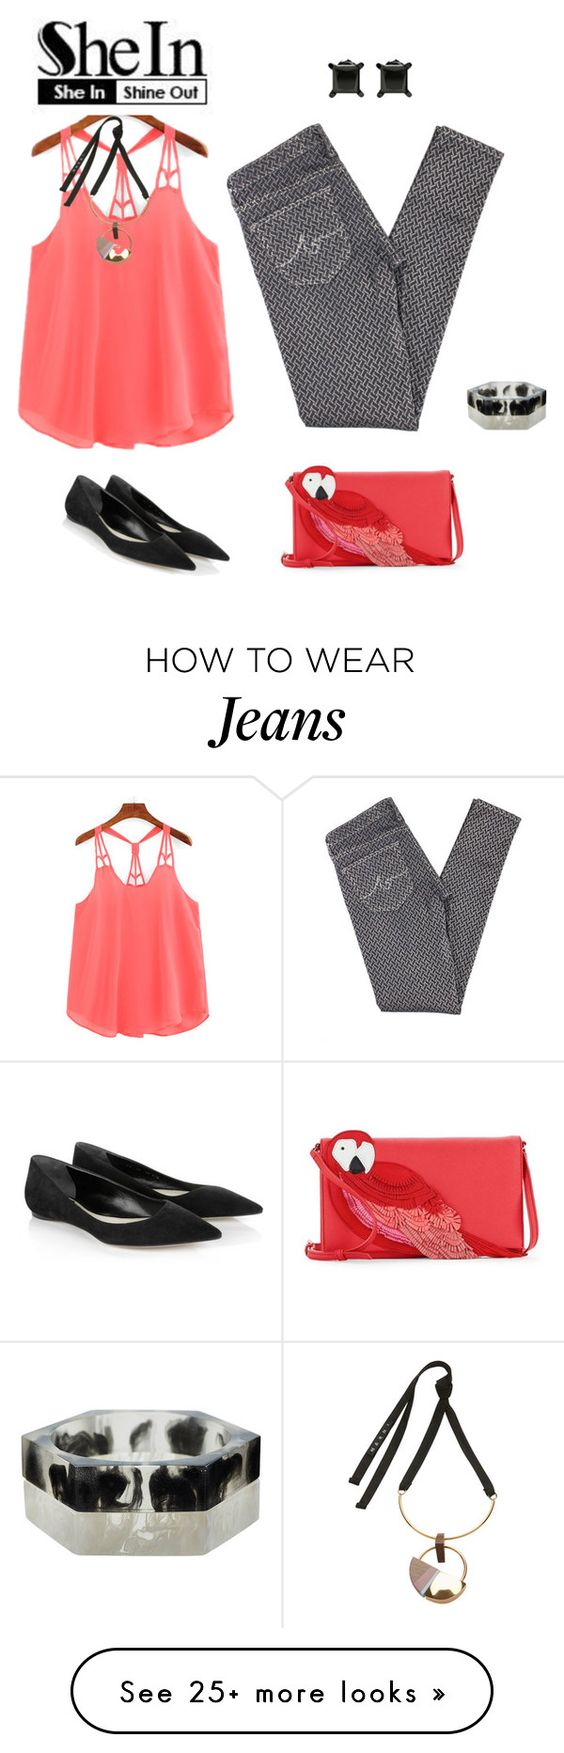 """top 2"" by natalyag on Polyvore featuring AG Adriano Goldschmied, Christian Dior, Kate Spade and Marni"